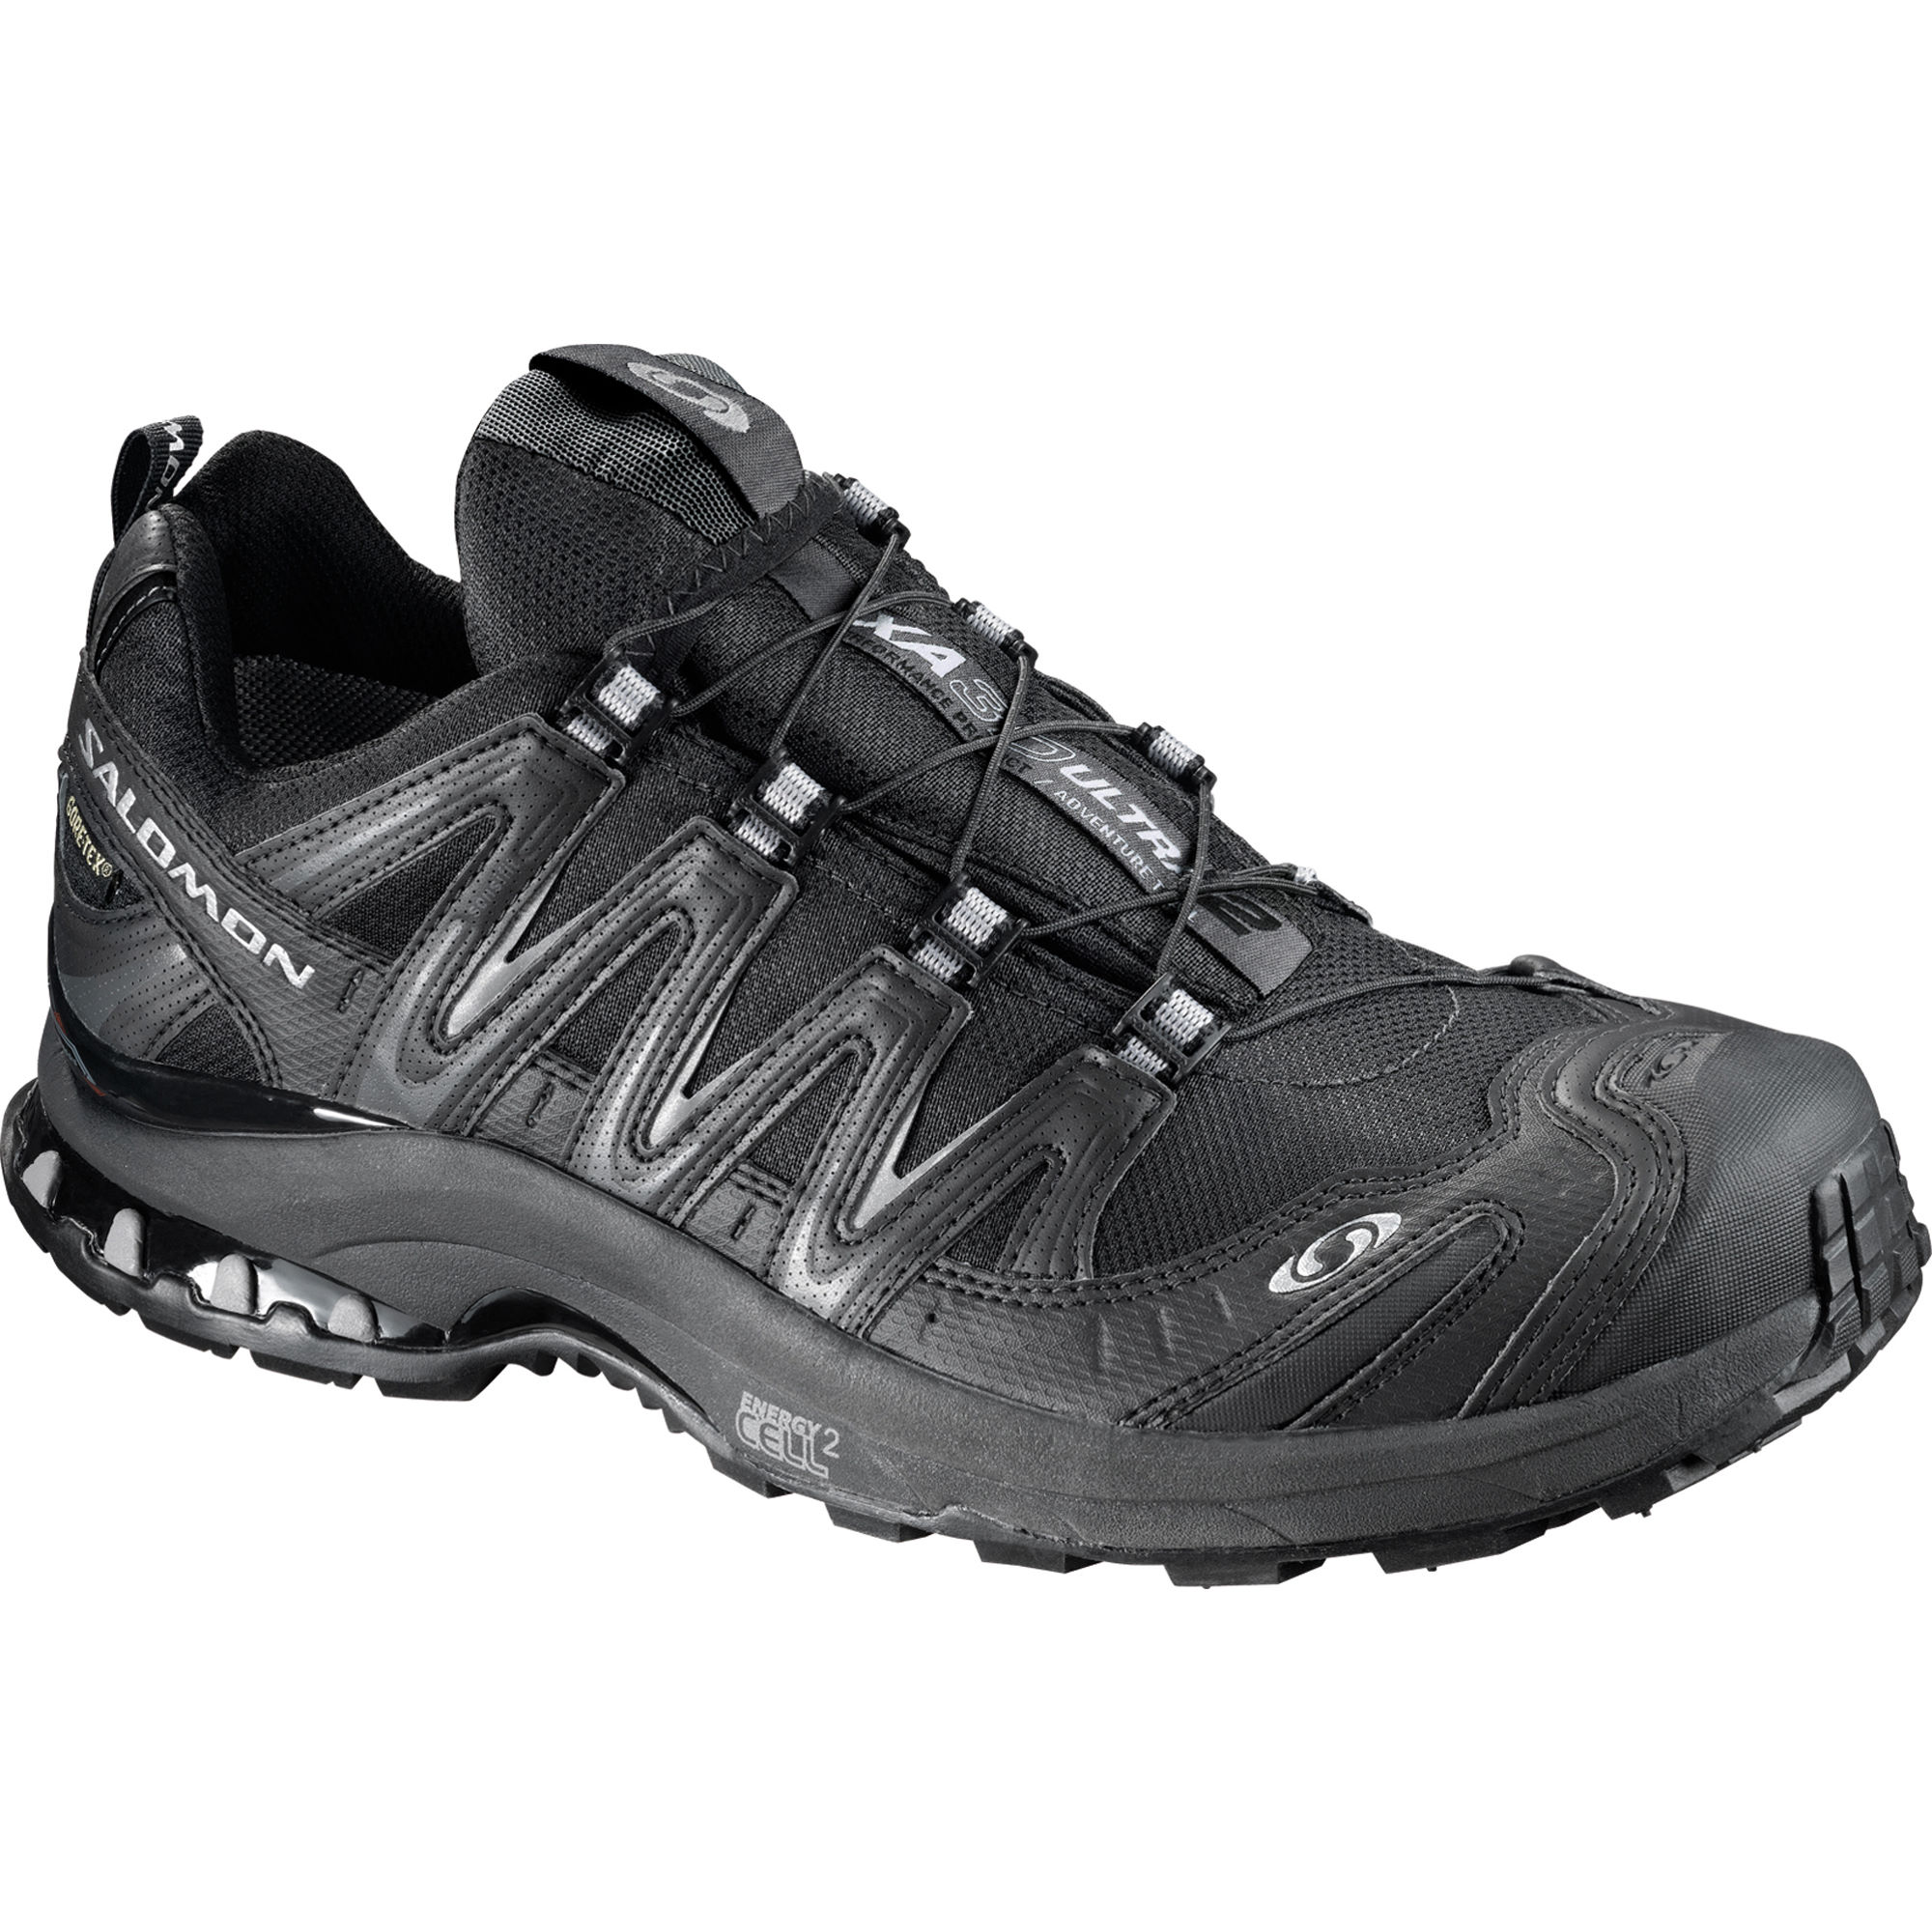 wiggle salomon xa pro 3d ultra 2 gtx shoes ss14. Black Bedroom Furniture Sets. Home Design Ideas